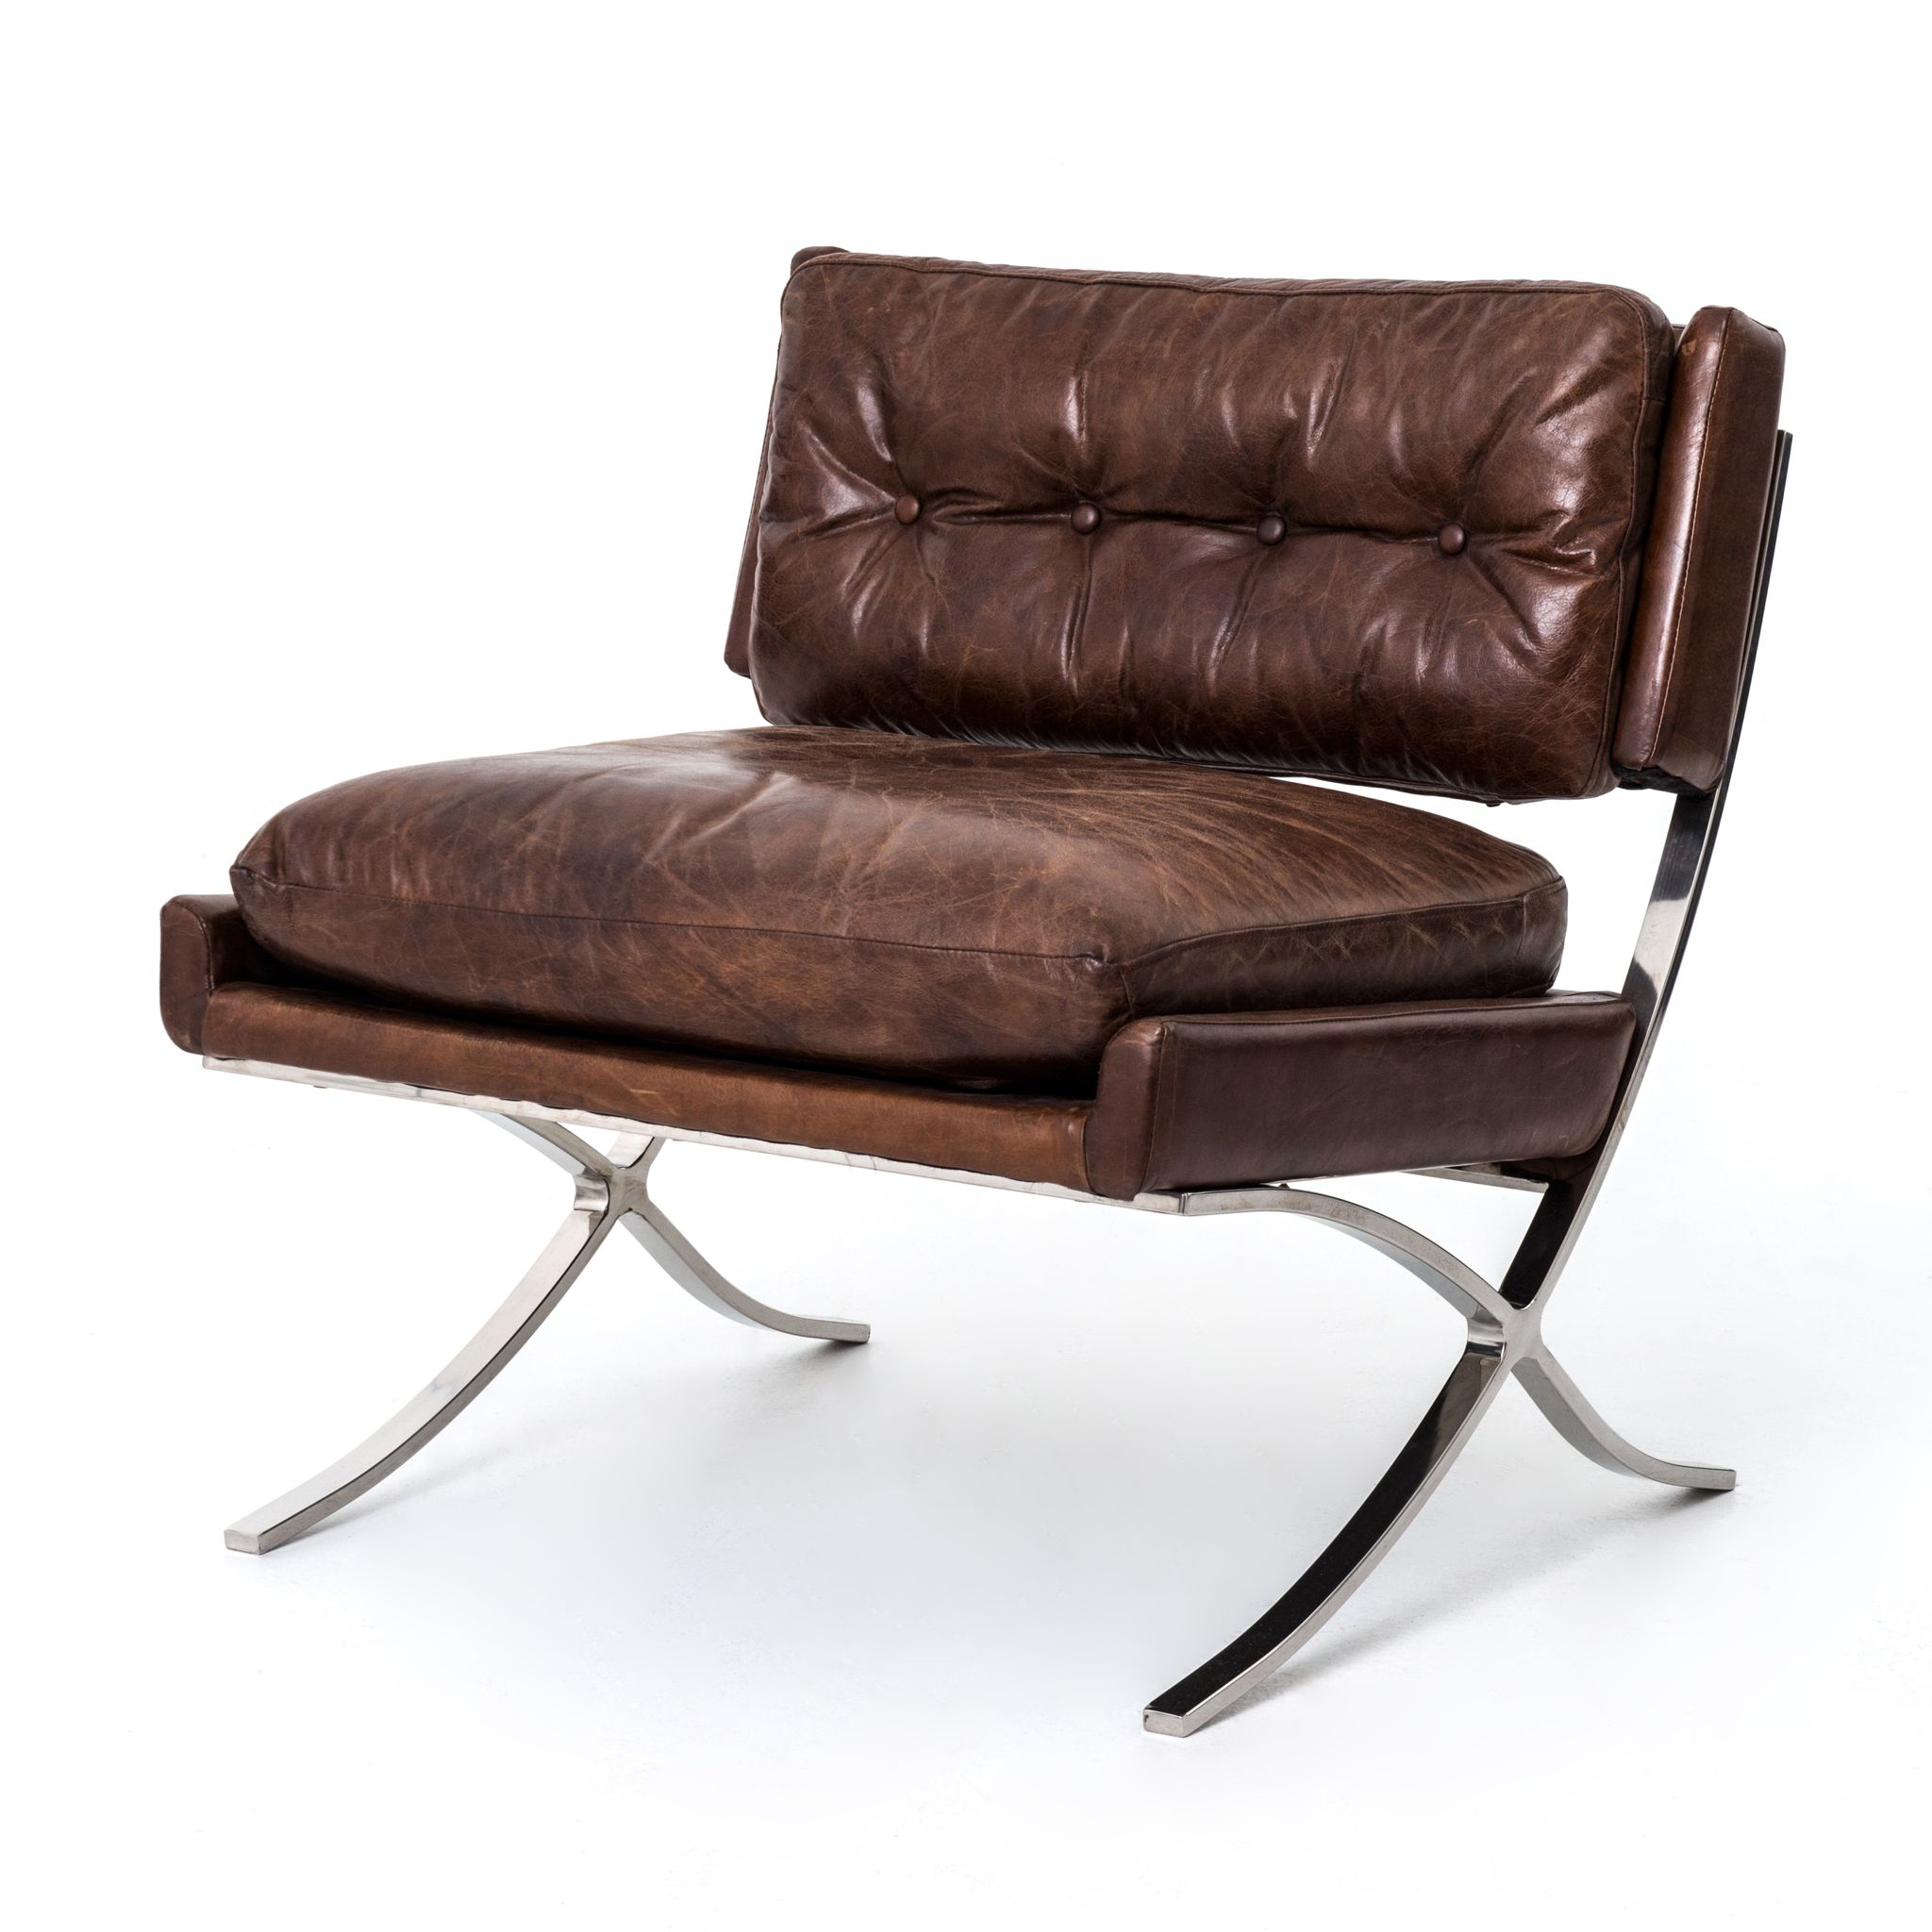 An Update To A Classic Mid Century Modern Chair Features An